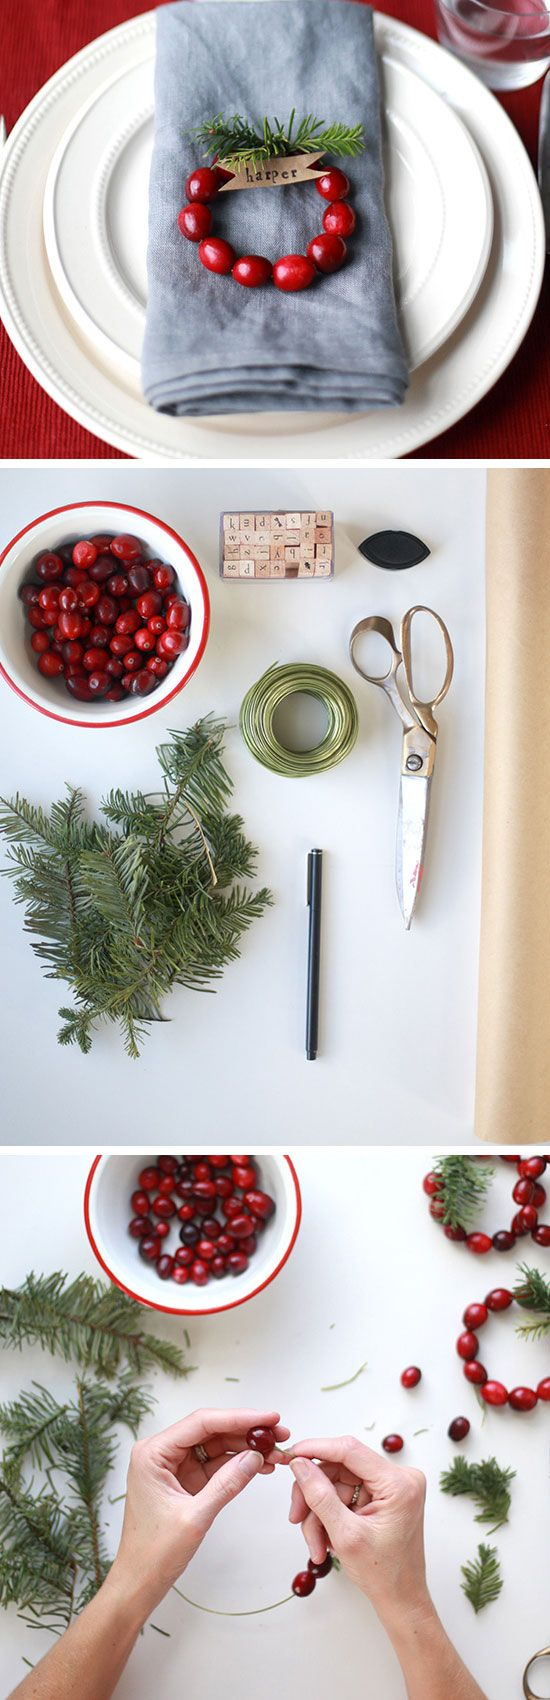 .~DIY Mini Cranberry Wreath Place Cards | Click for 30 DIY Christmas Table Centerpiece Ideas | DIY Christmas Table Decoration Ideas°°